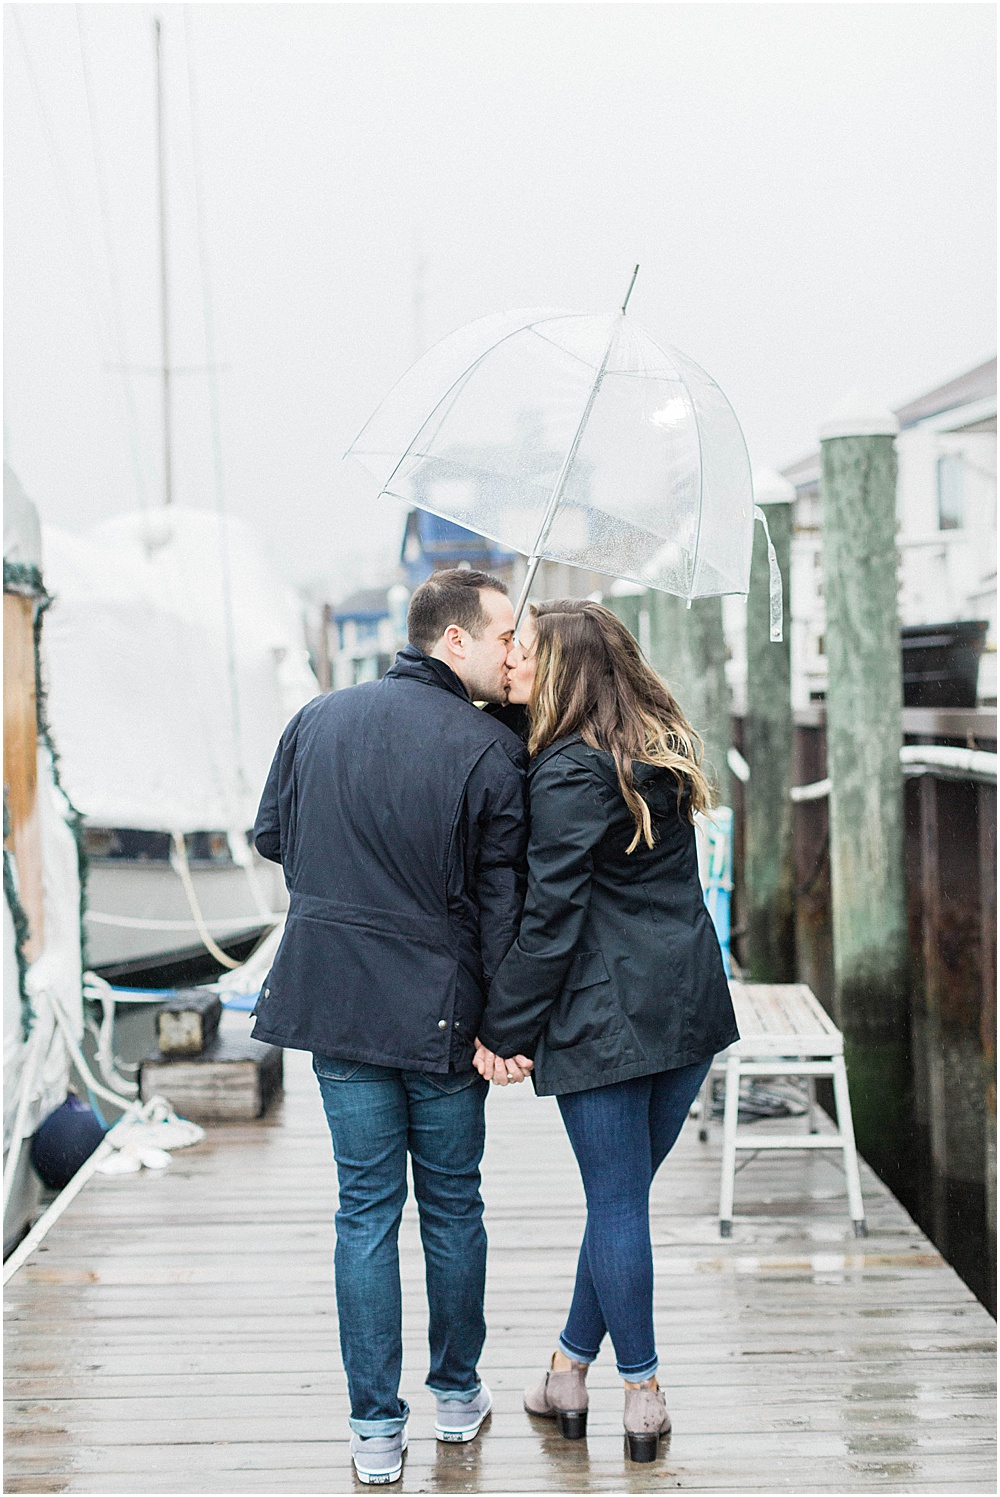 Lean in for a Rainy Kiss During Your Newport Engagement Session